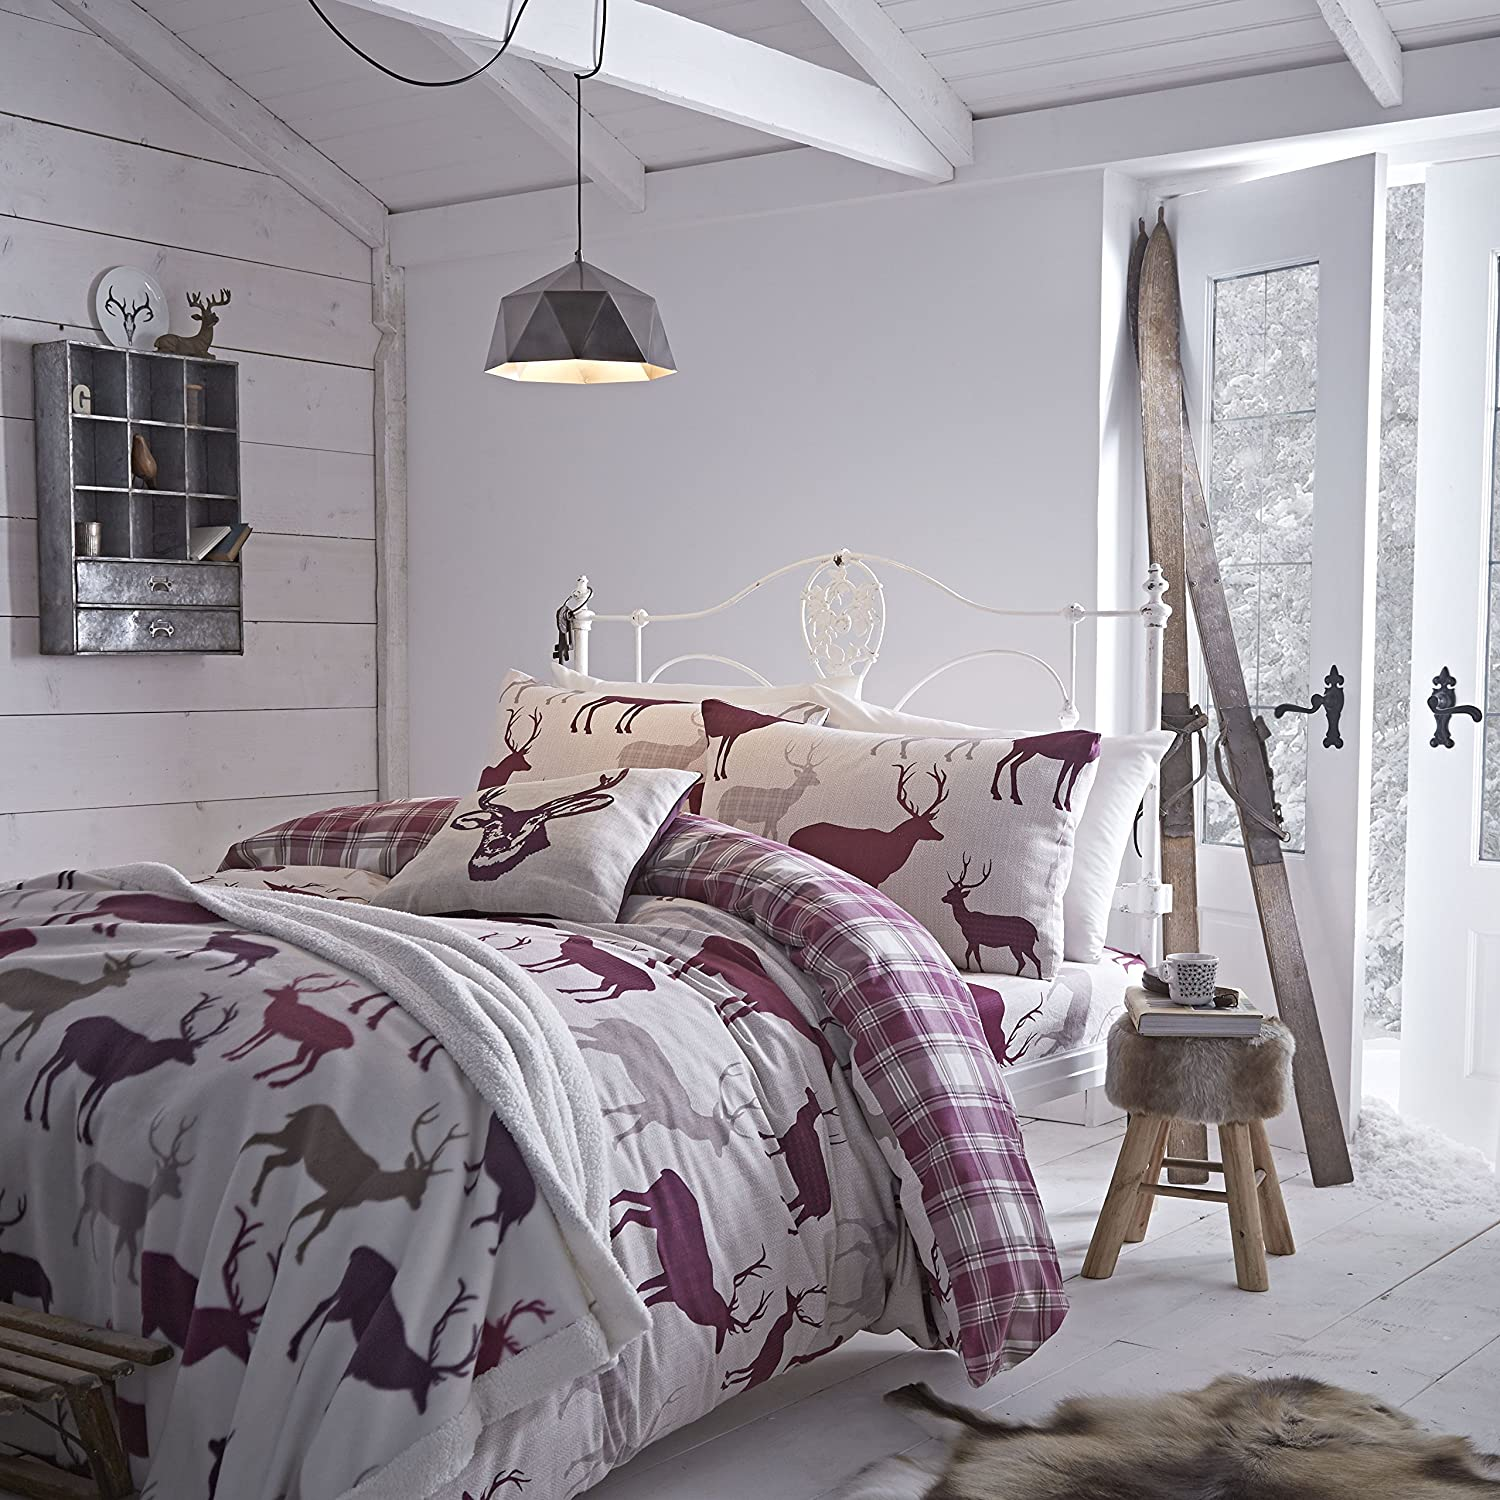 stag bedding